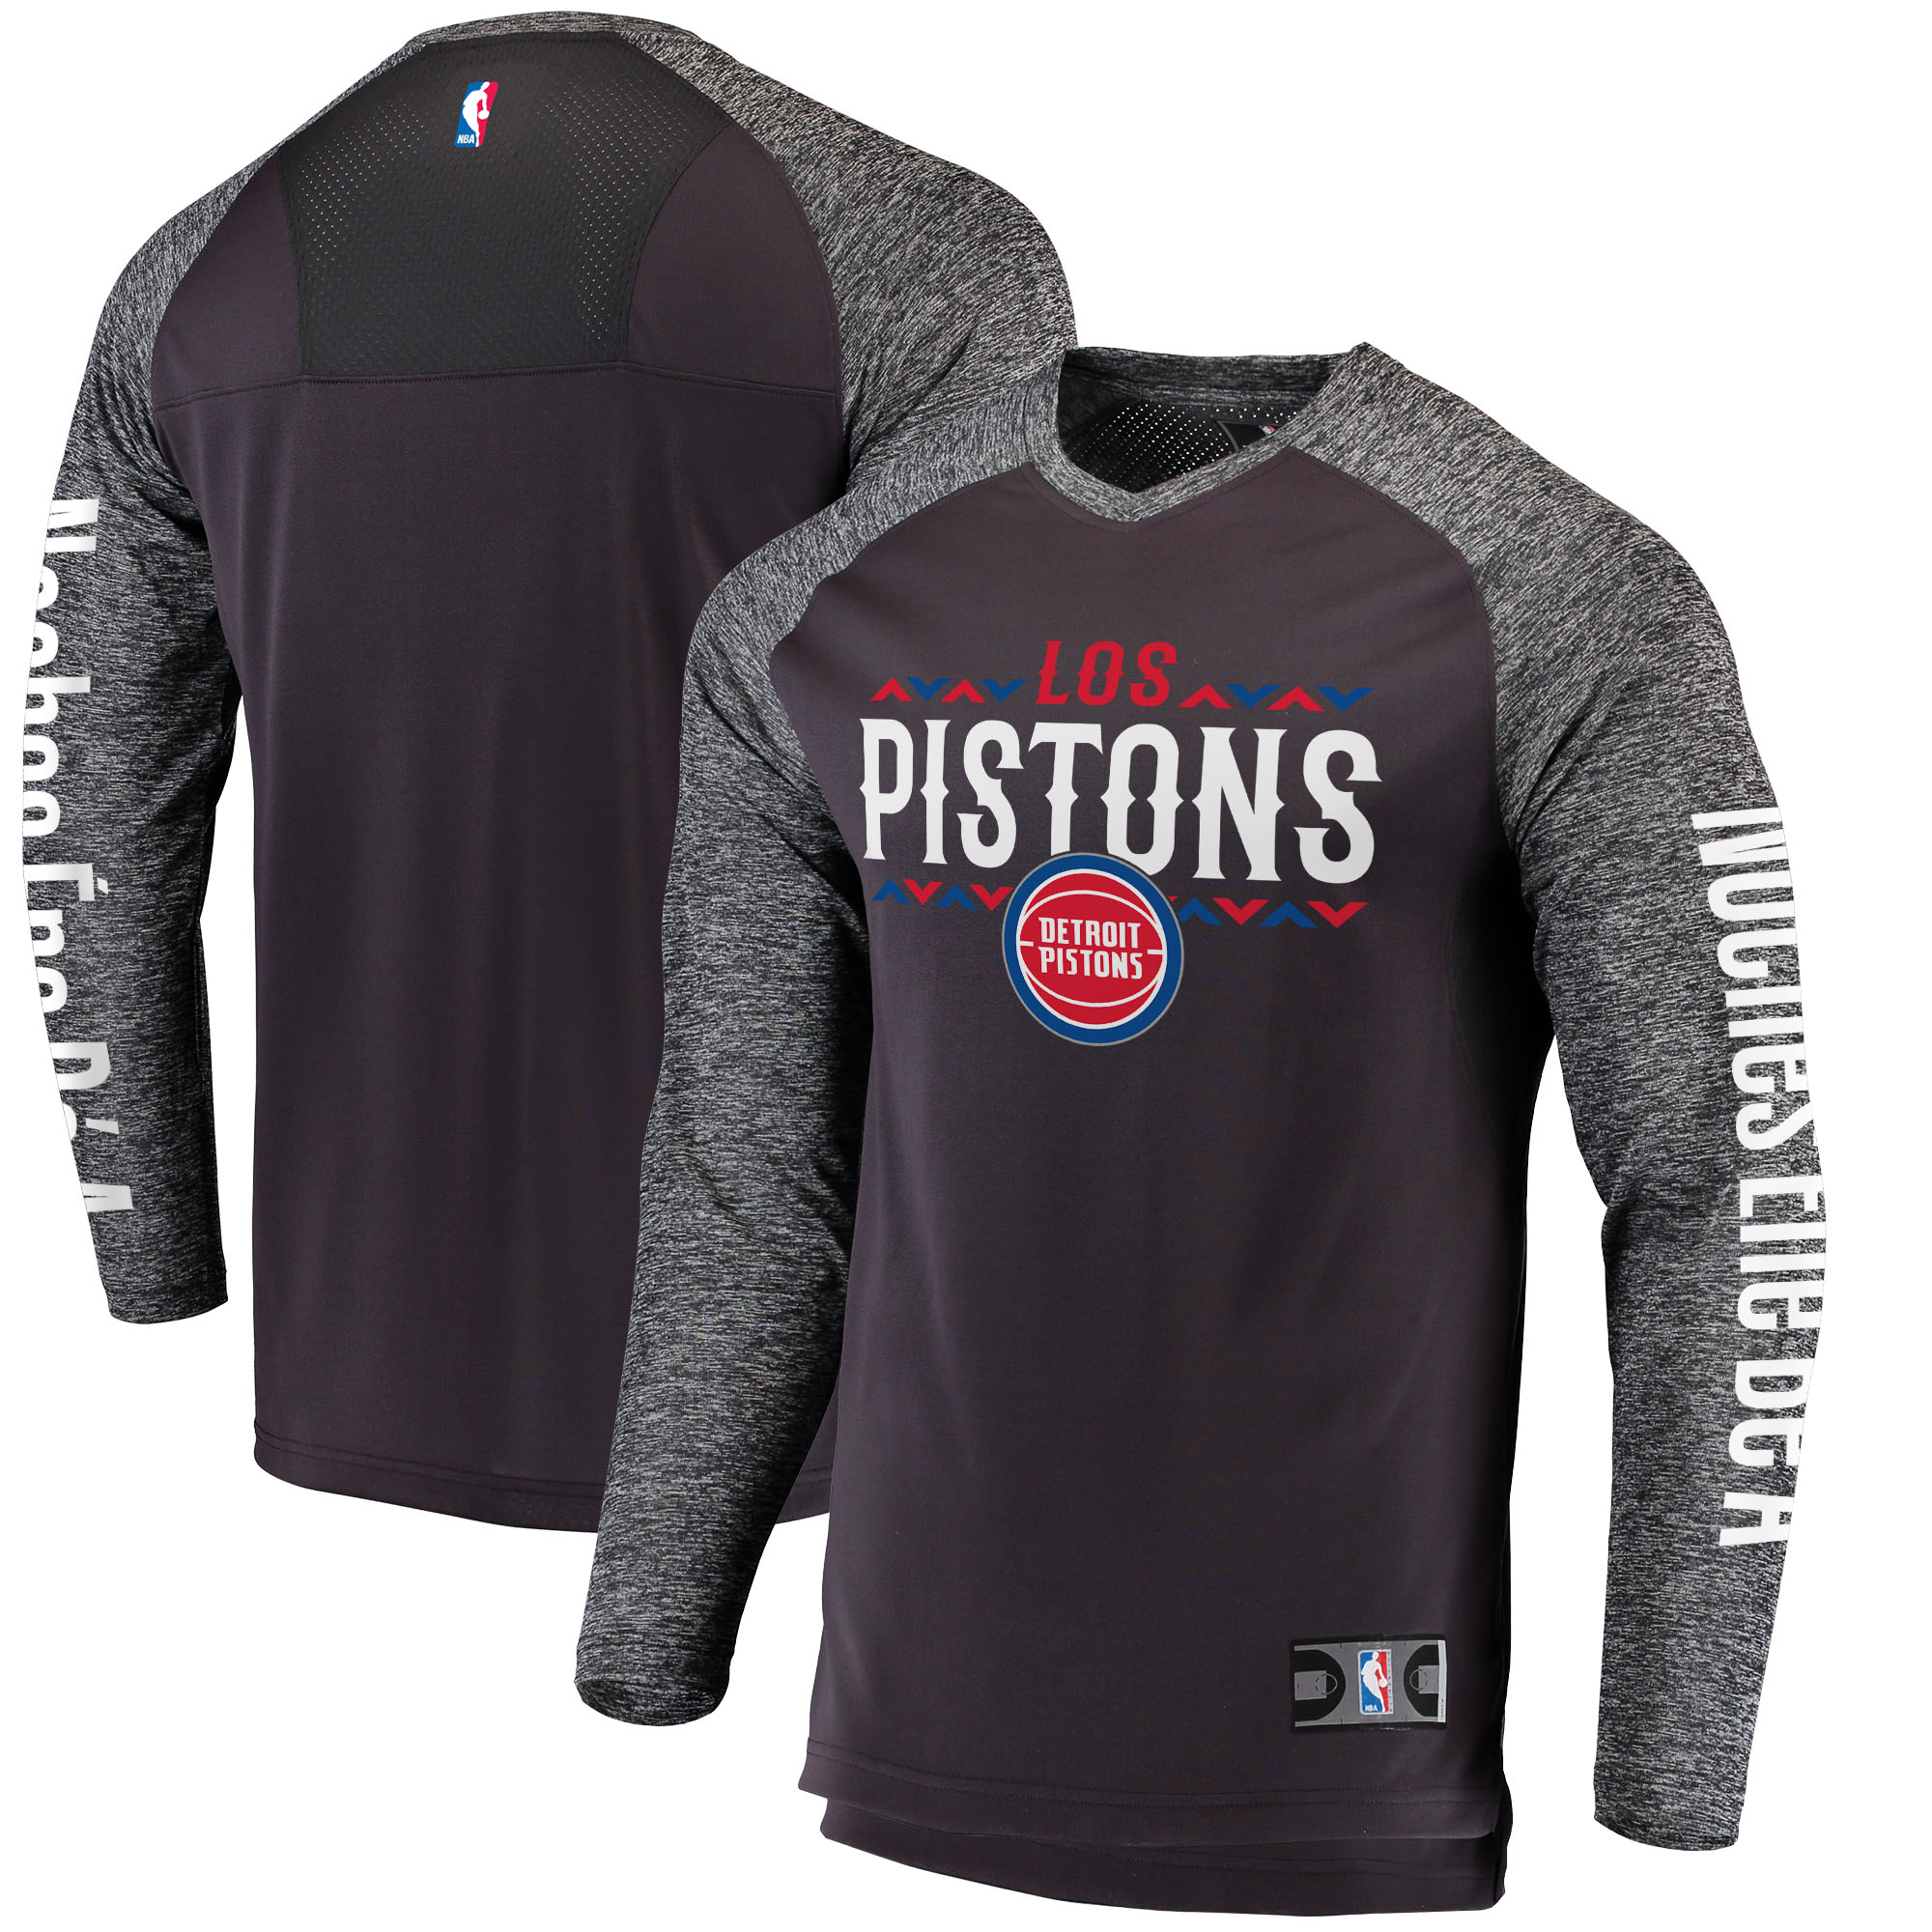 Detroit Pistons Fanatics Branded Noches Ene-Be-A Authentic Long Sleeve Shooting Shirt - Black/Heathered Gray